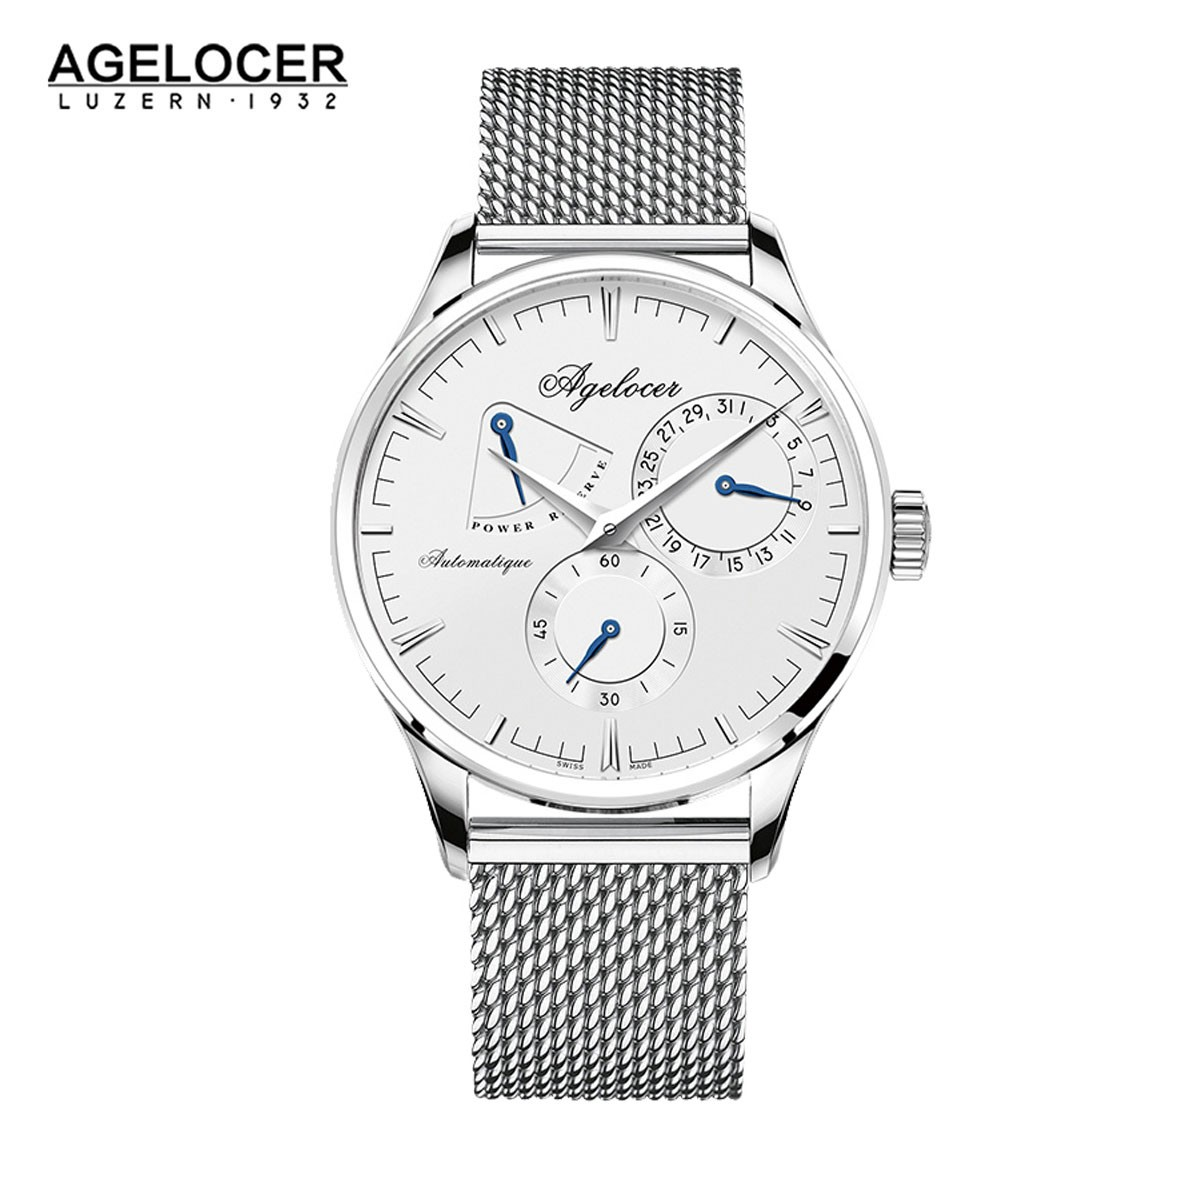 Agelocer Budapest 40mm Steel 4101A9